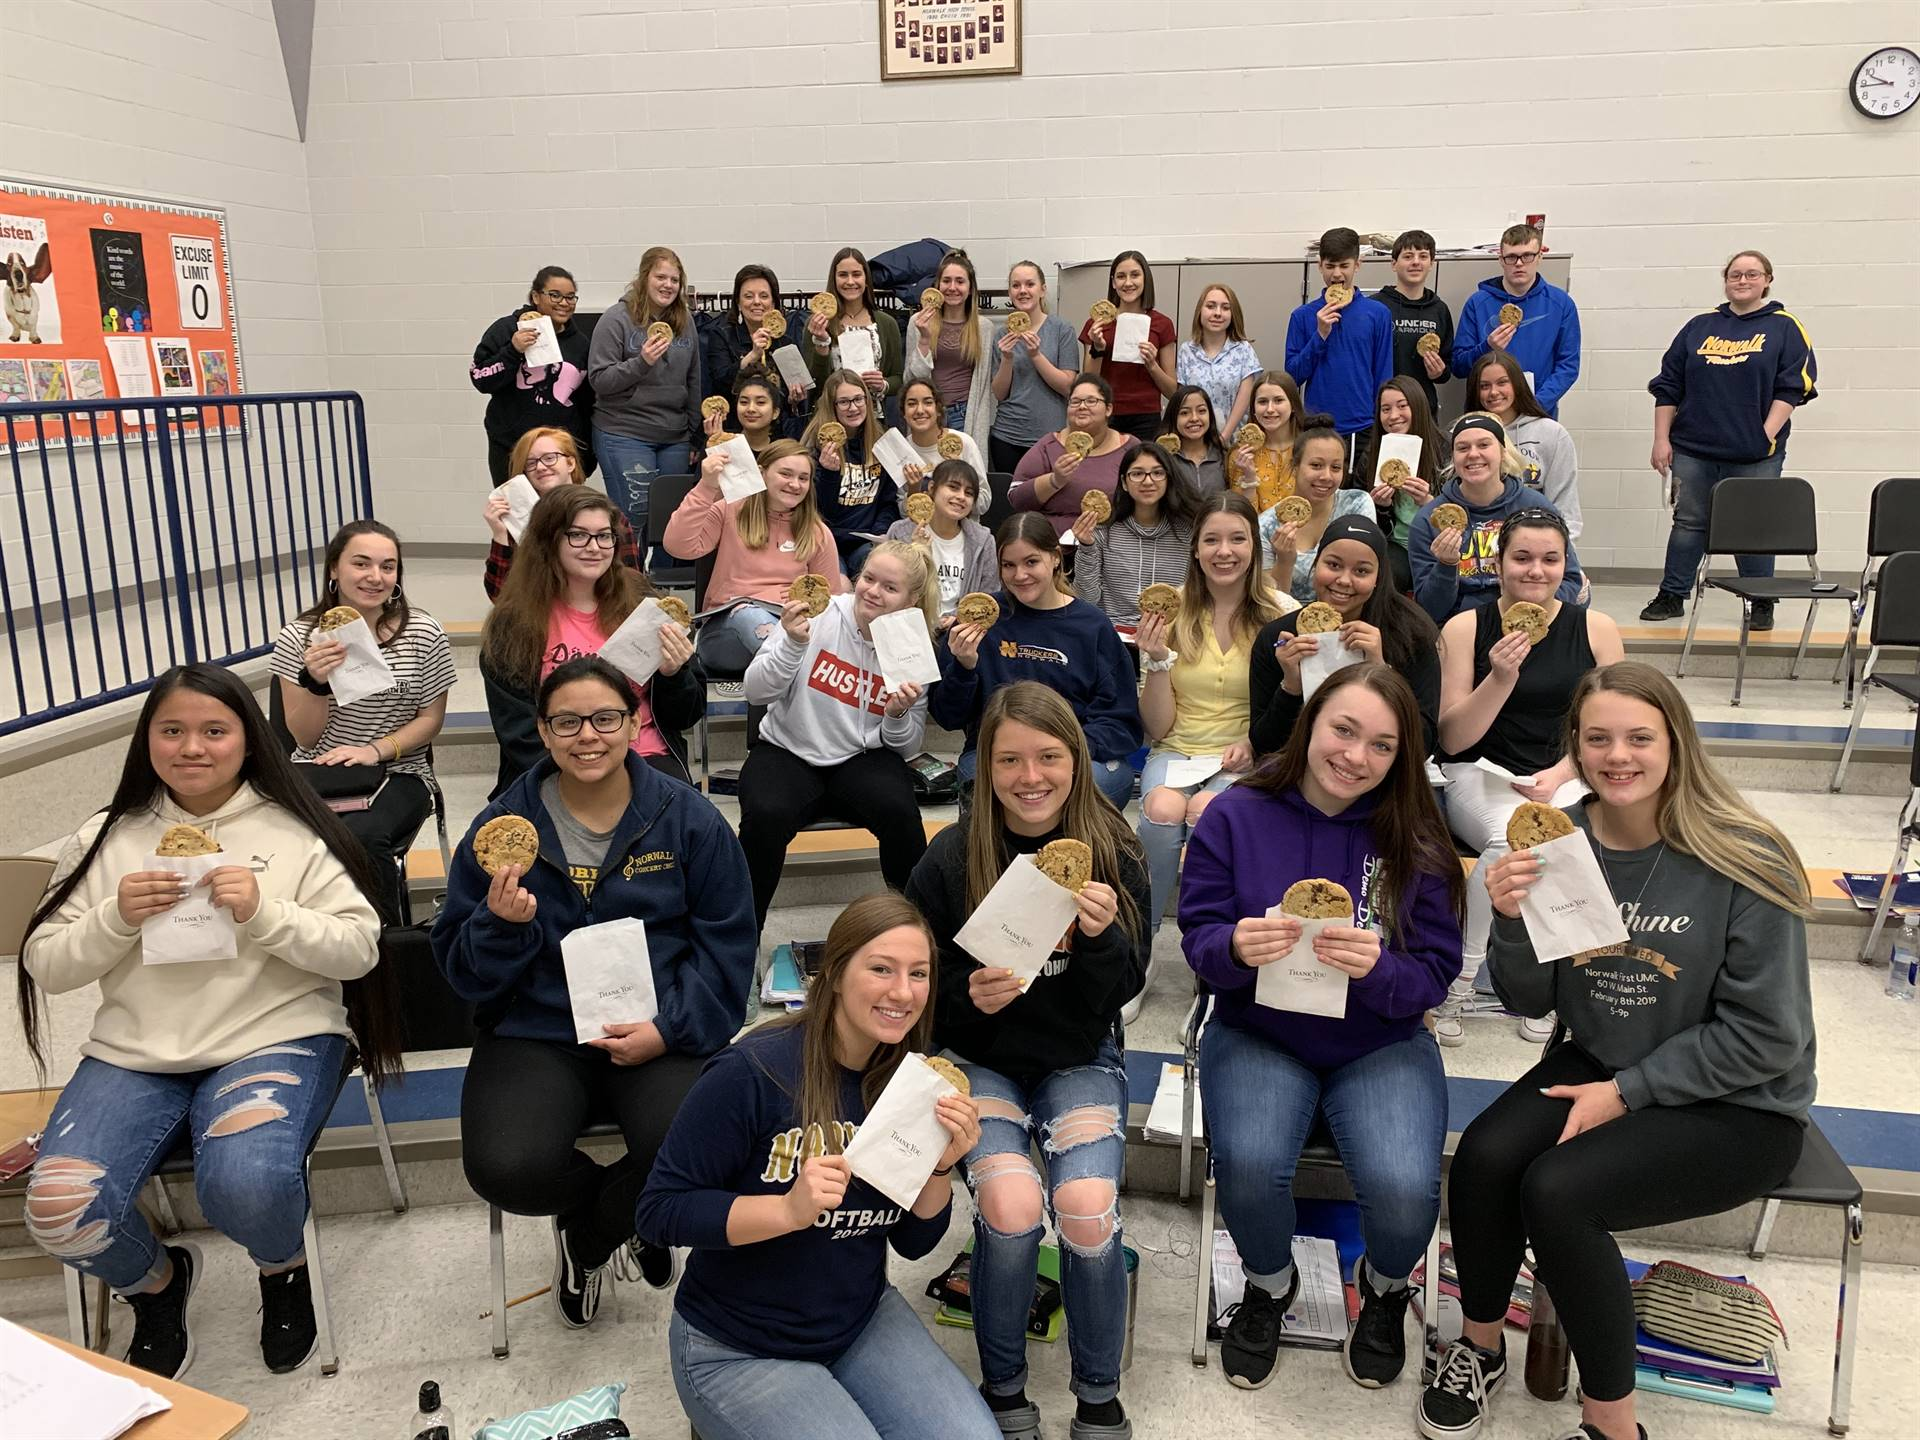 Music Boosters provided cookies to students